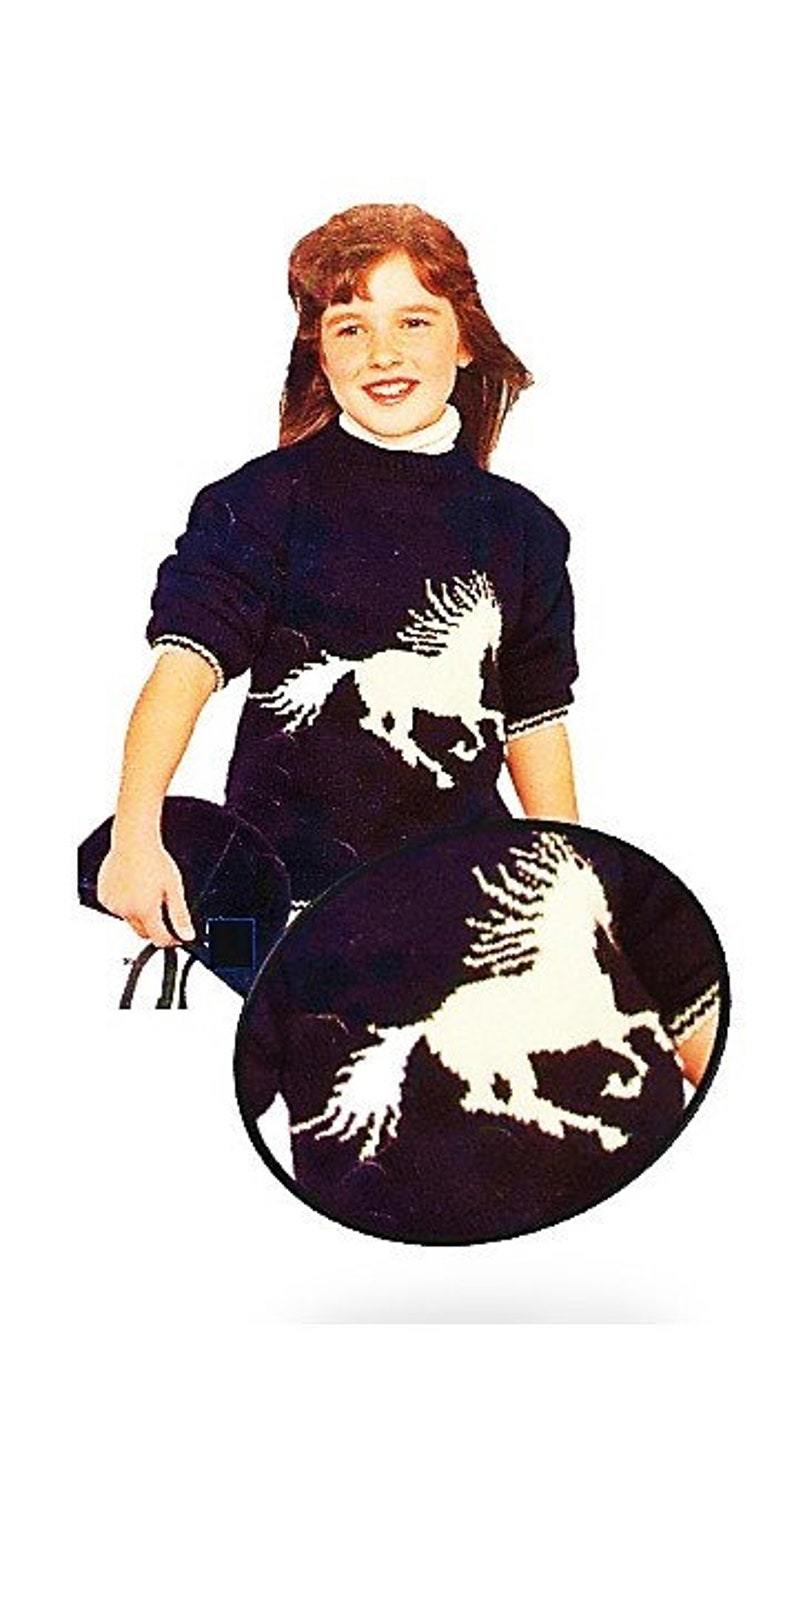 Knit Pony Sweater PATTERN Boy Girl Jockey Horse Outfit Graph Chart Polo Pullover Riding Equestrian Winter X Mas Gift Vintage Digital Pdf